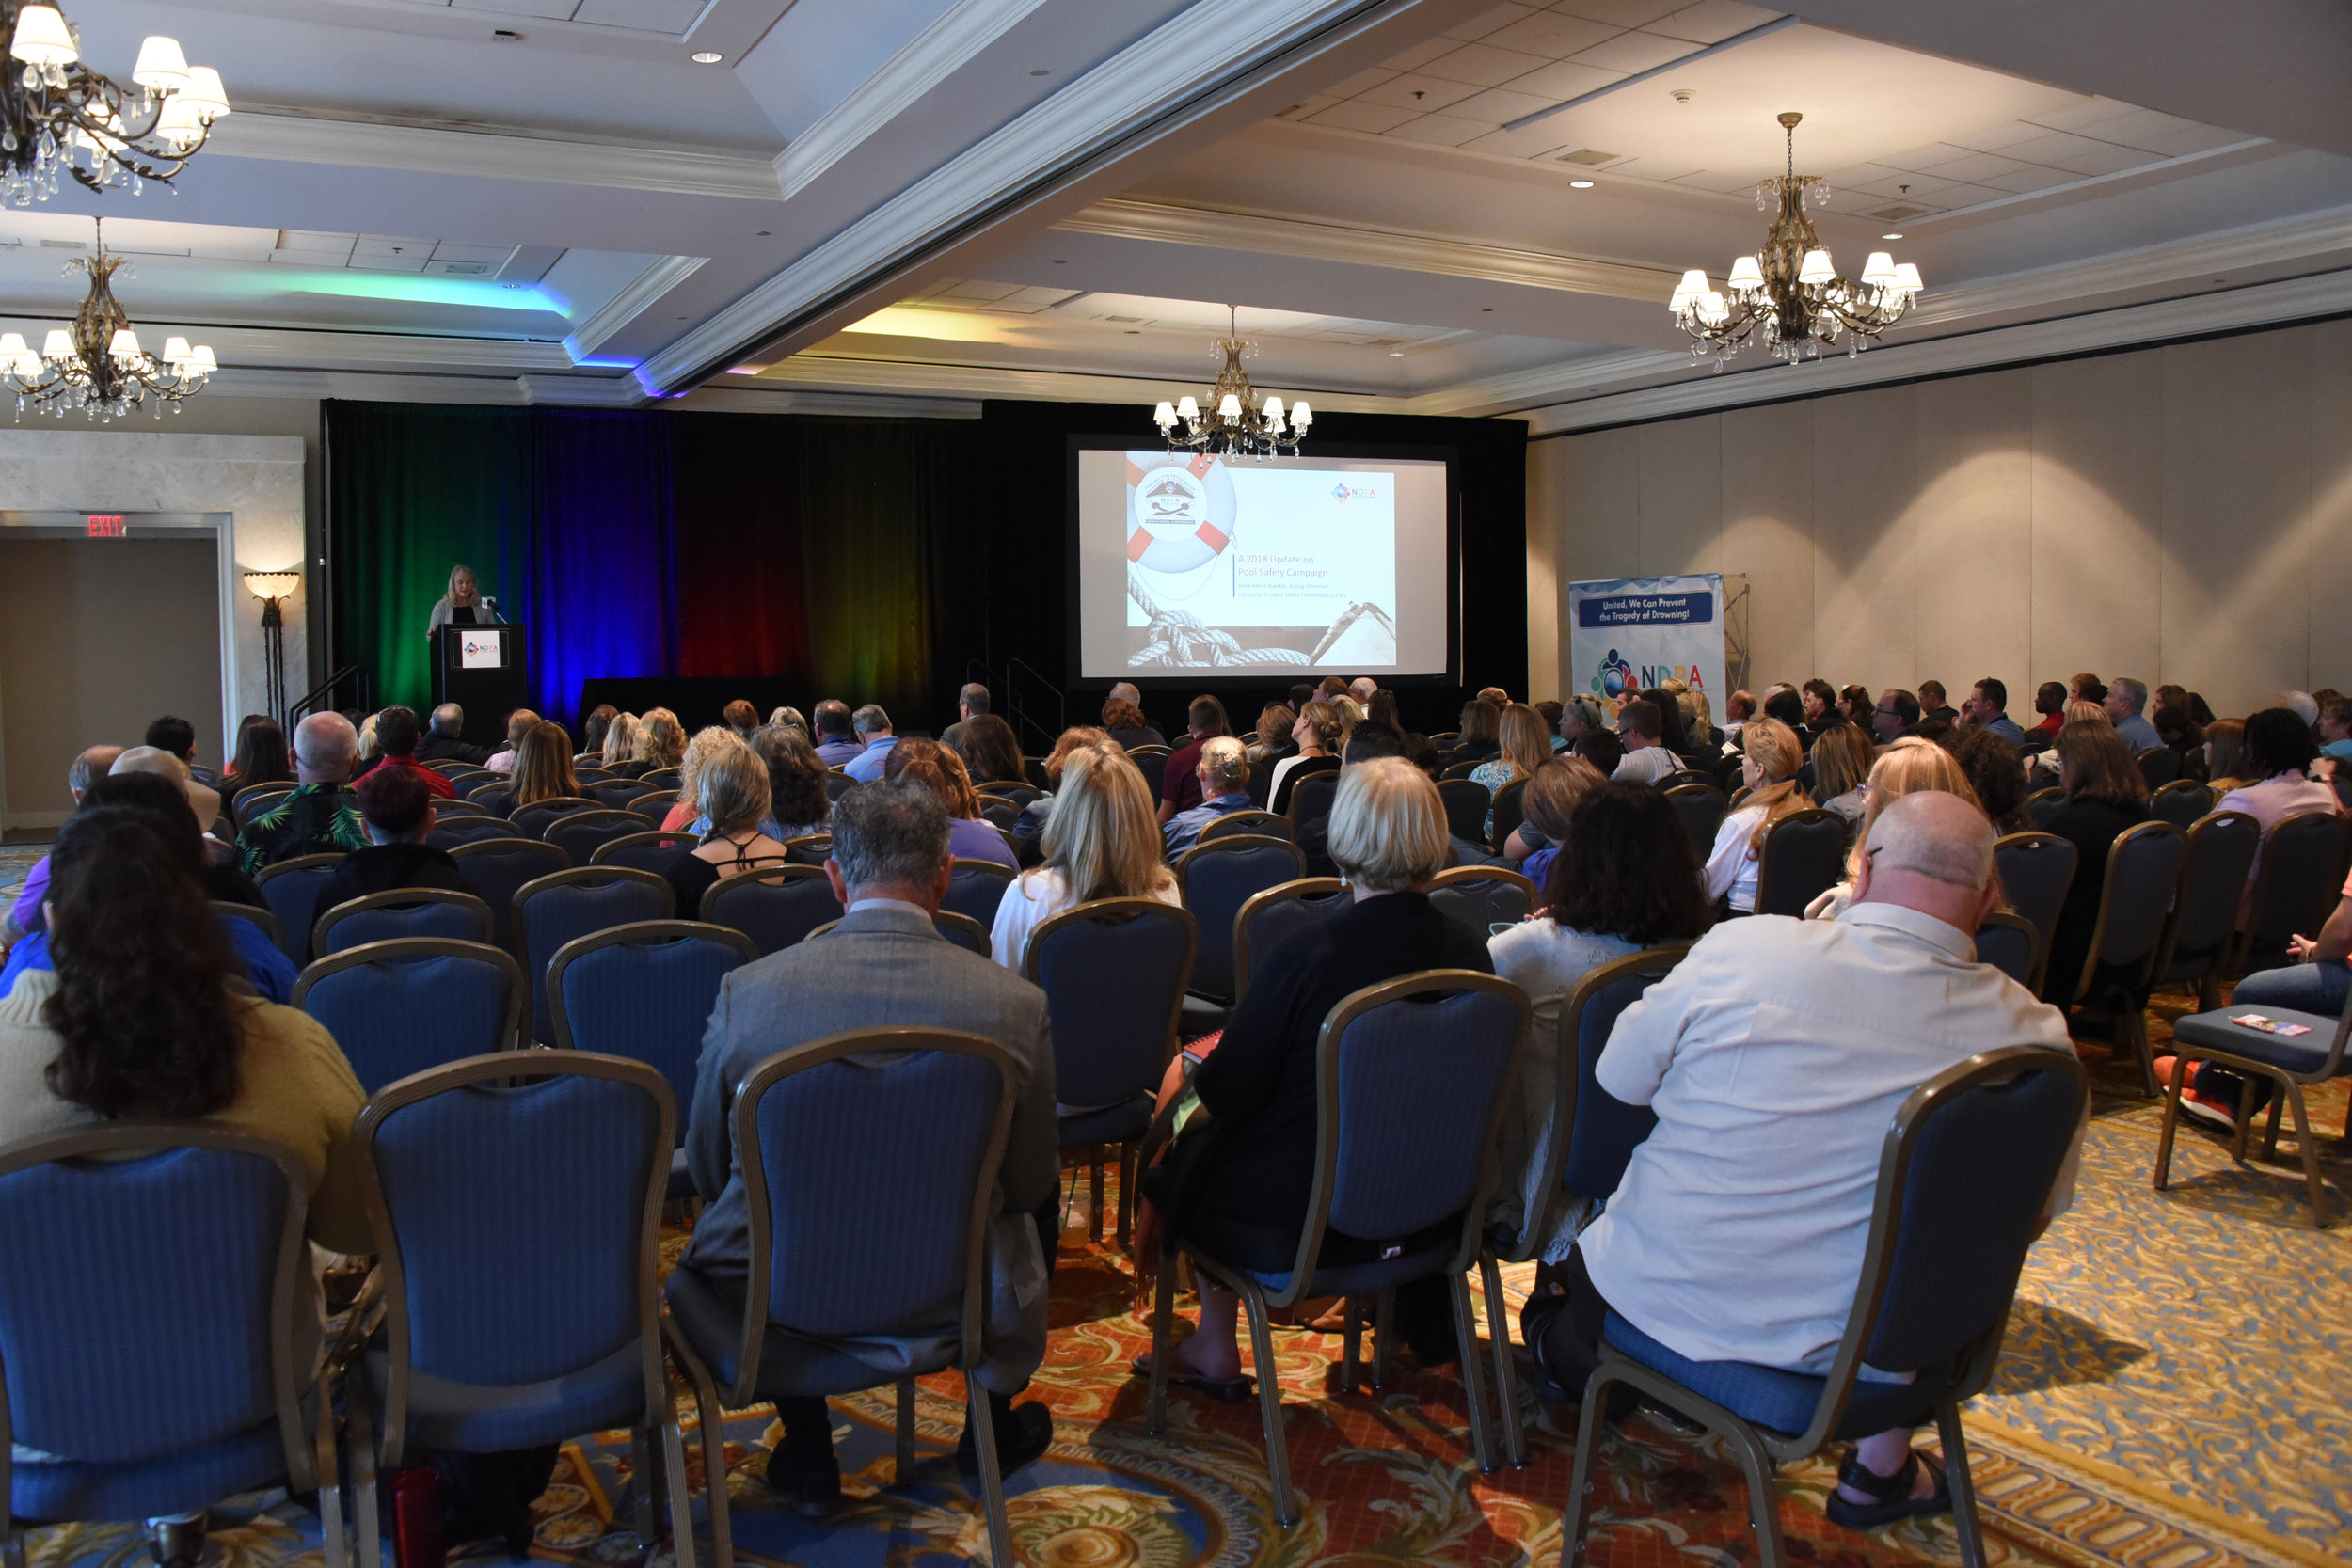 Share your knowledge, research, and programs with others! - Submit a presentation to speak at the 2020 National Water Safety Conference!